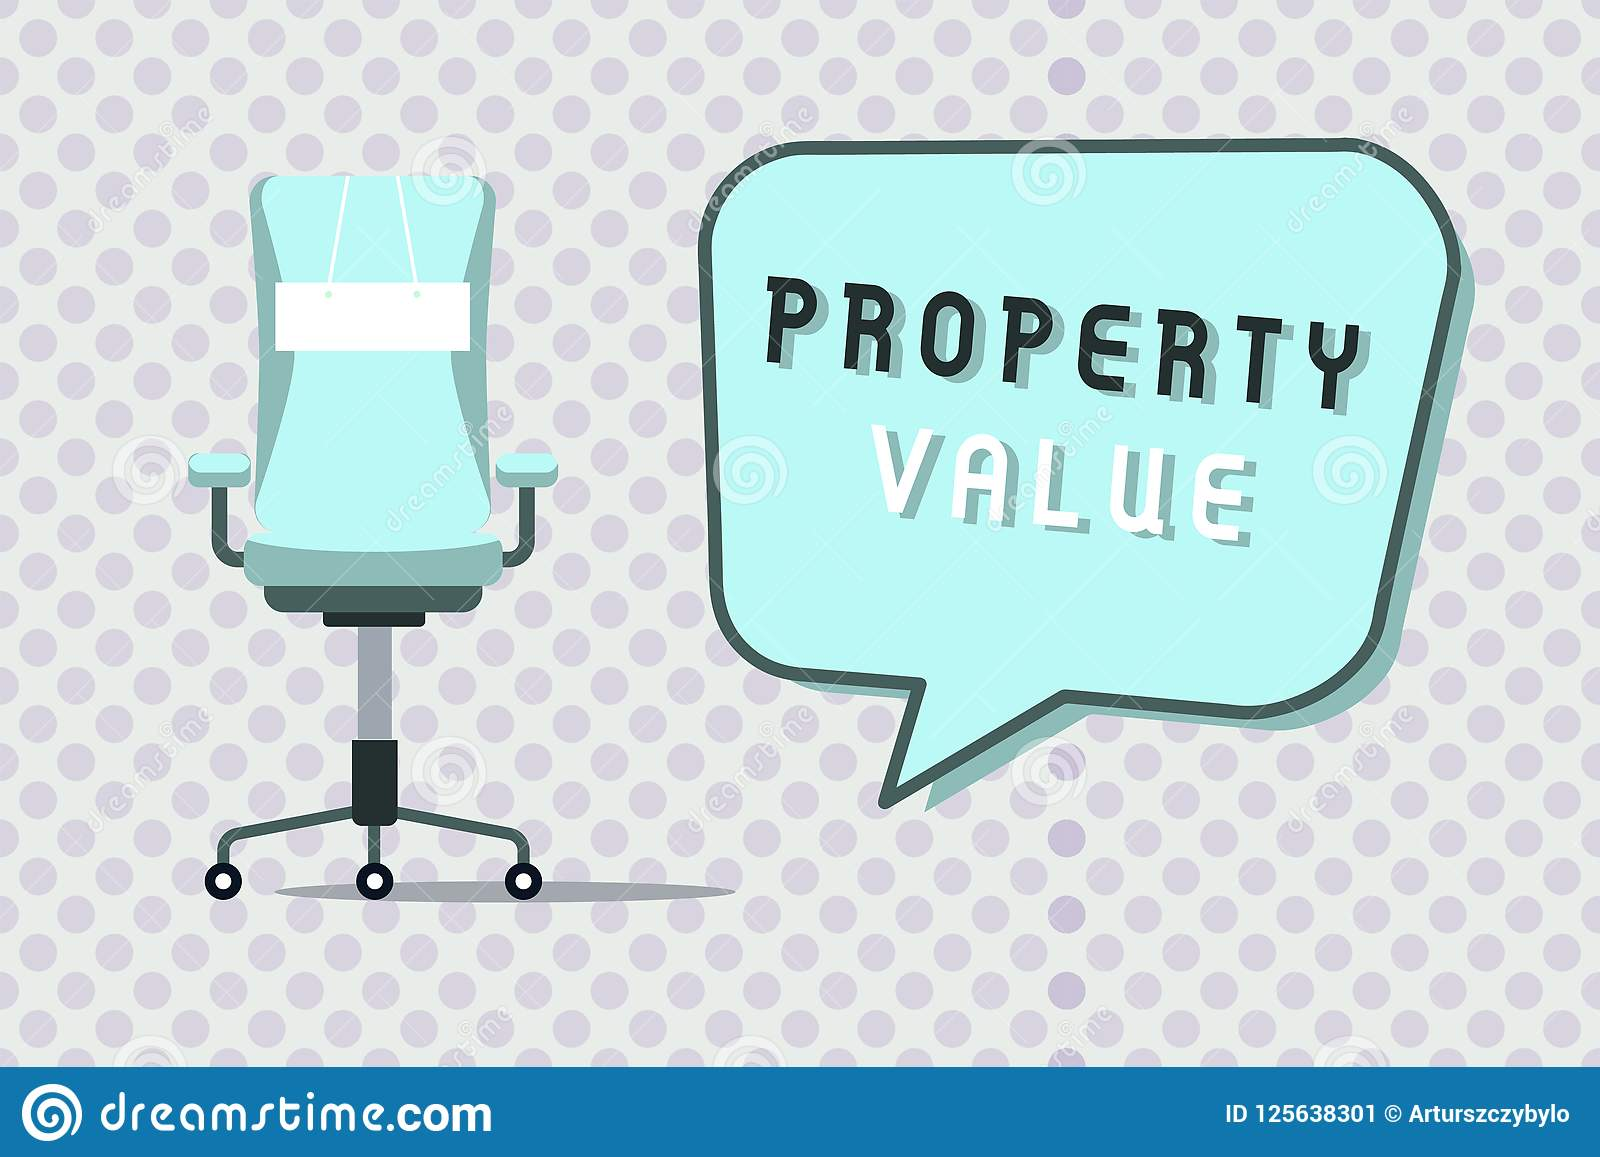 Real Estate Appraisal: From Value to Worth